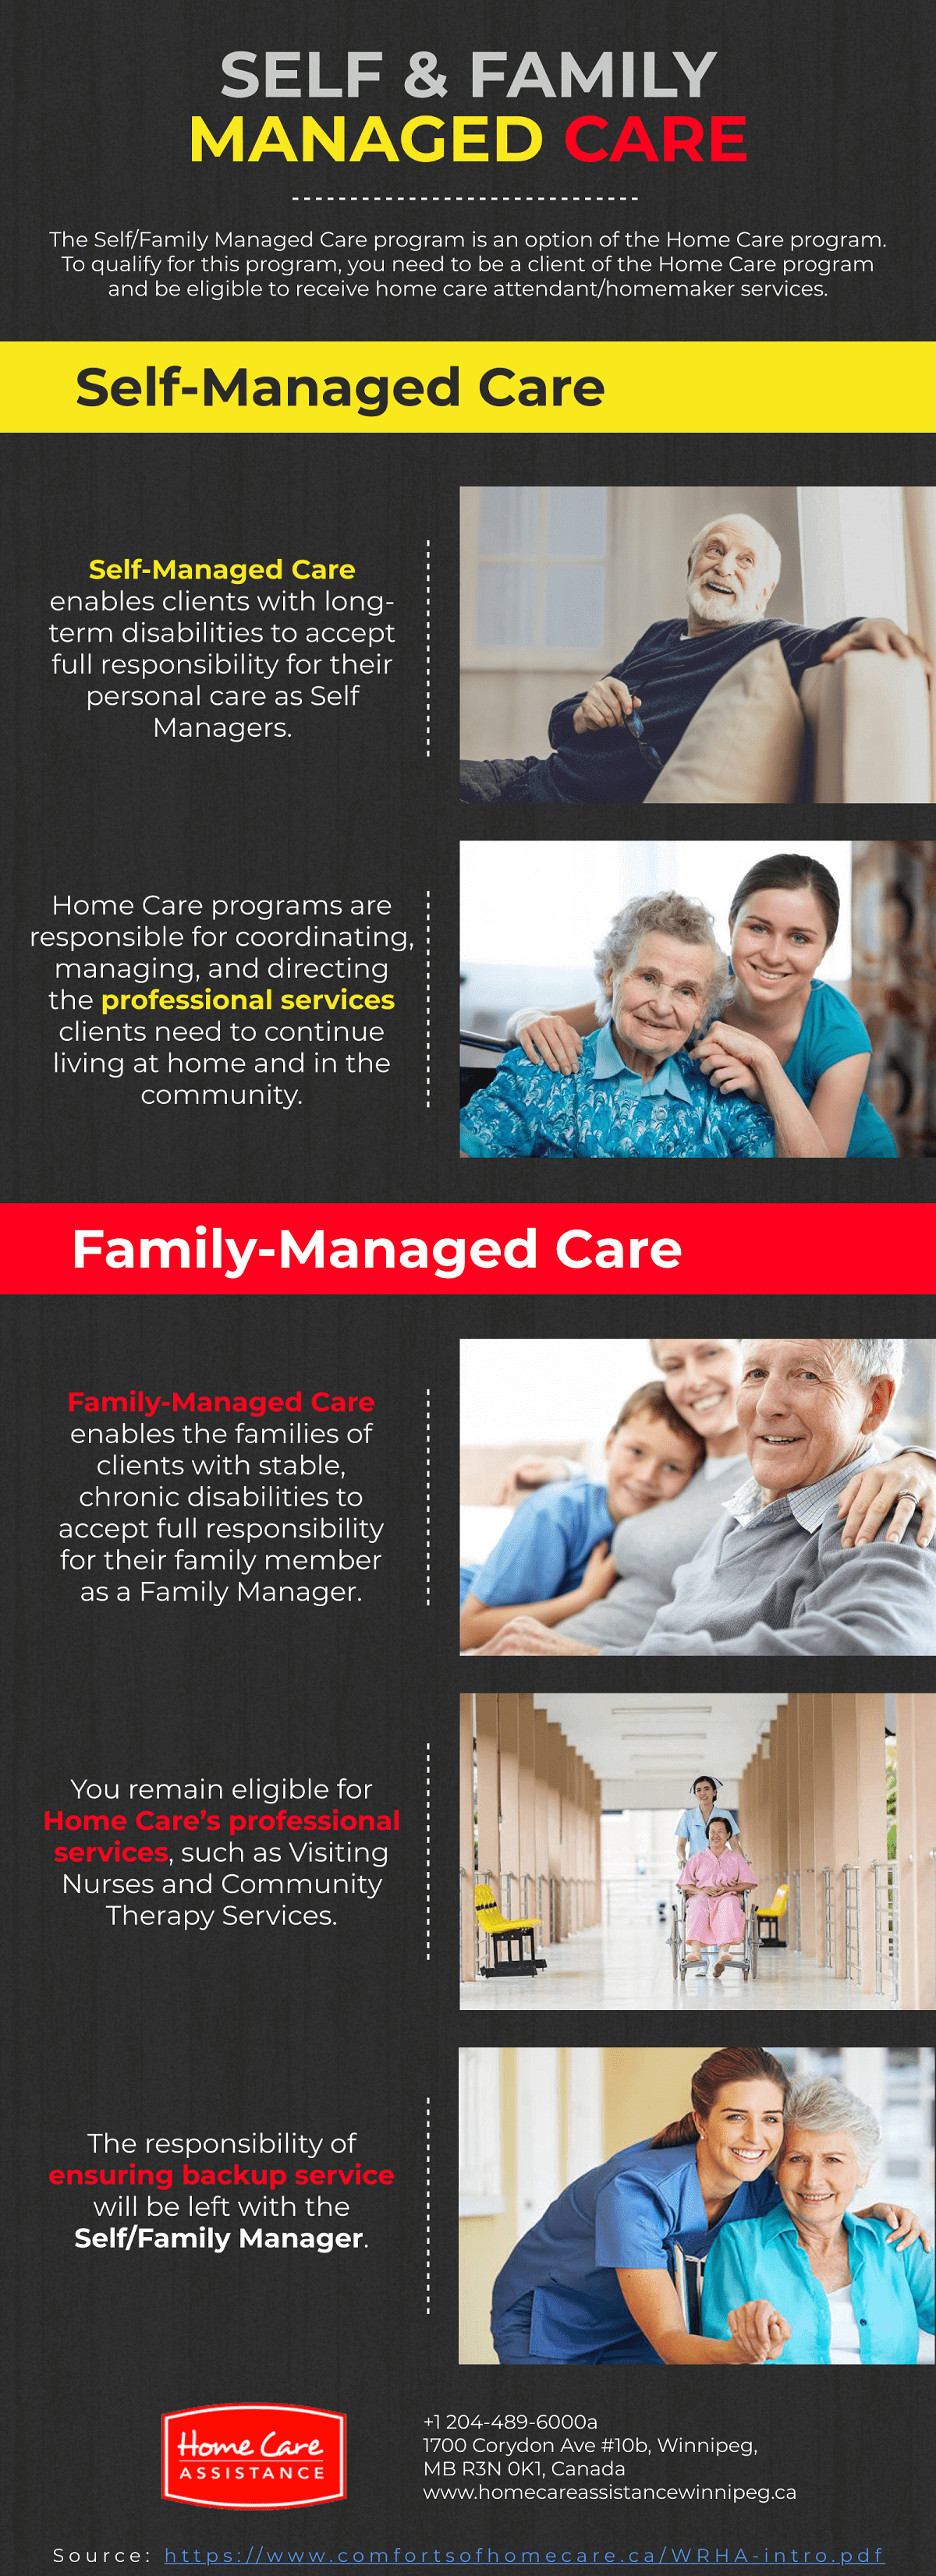 All You Need to Know about Self & Family Managed Care [Infographic]